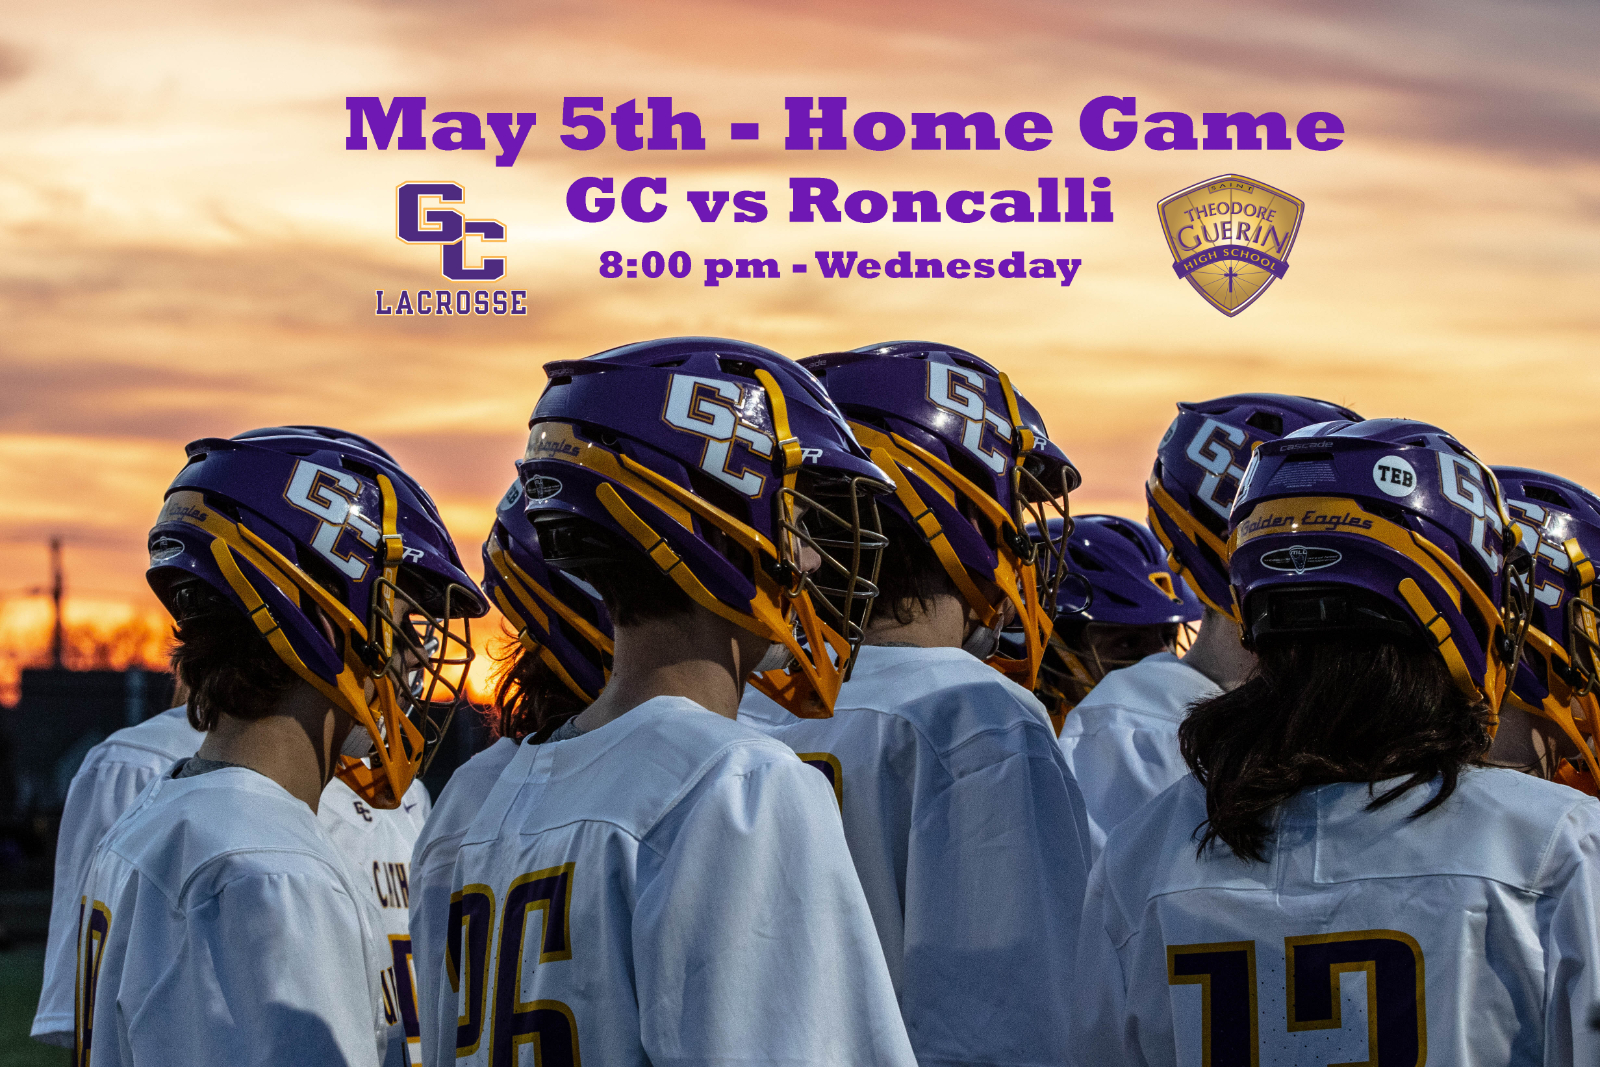 May 5th – GC vs Roncalli at the Nest